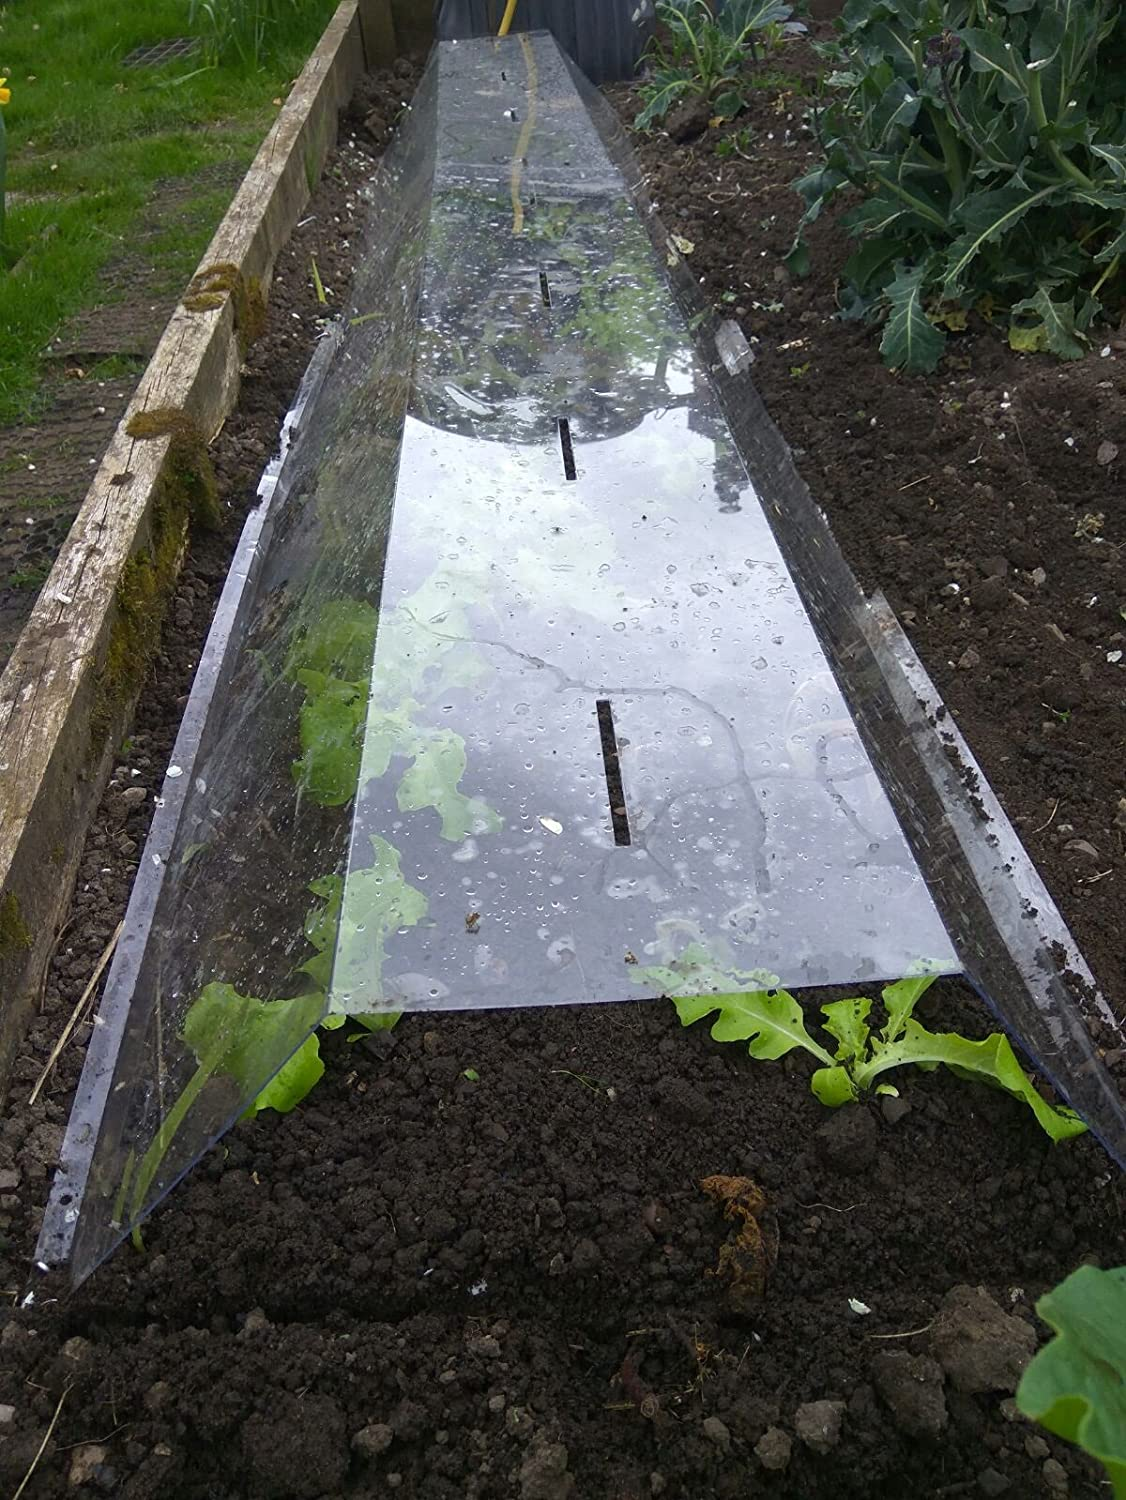 Clear cloche - high quality polycarbonate polytunnel / mini greenhouse SGR